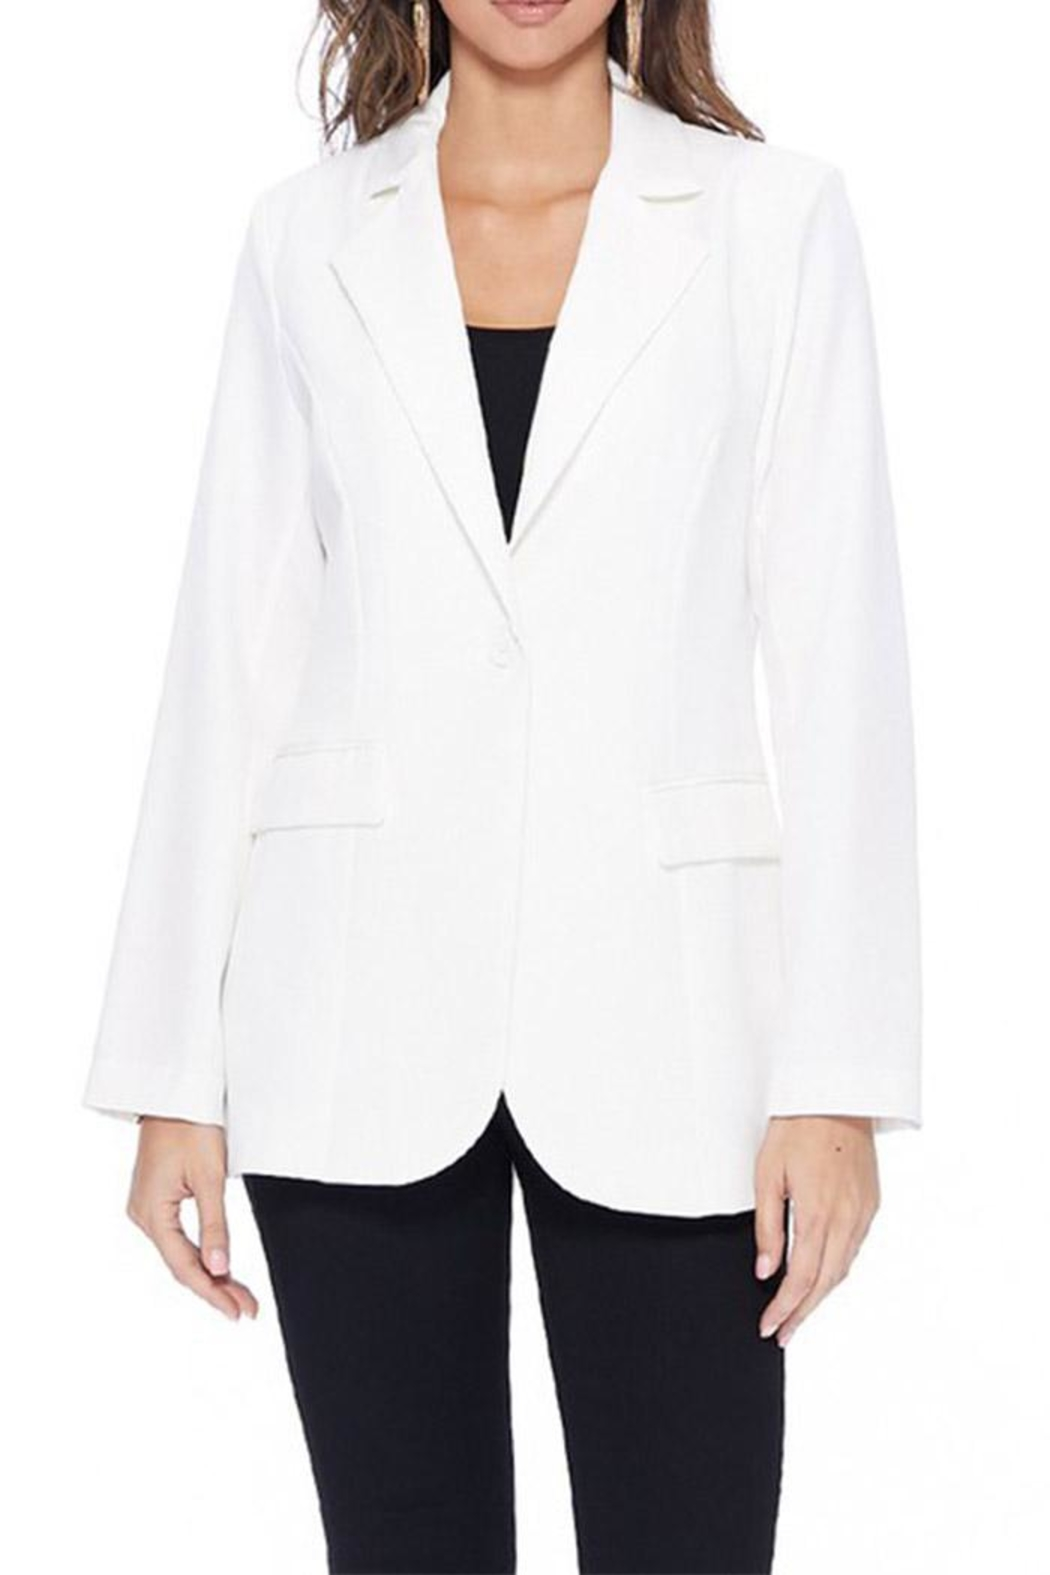 MICHEL Long Solid Blazer - Front Cropped Image